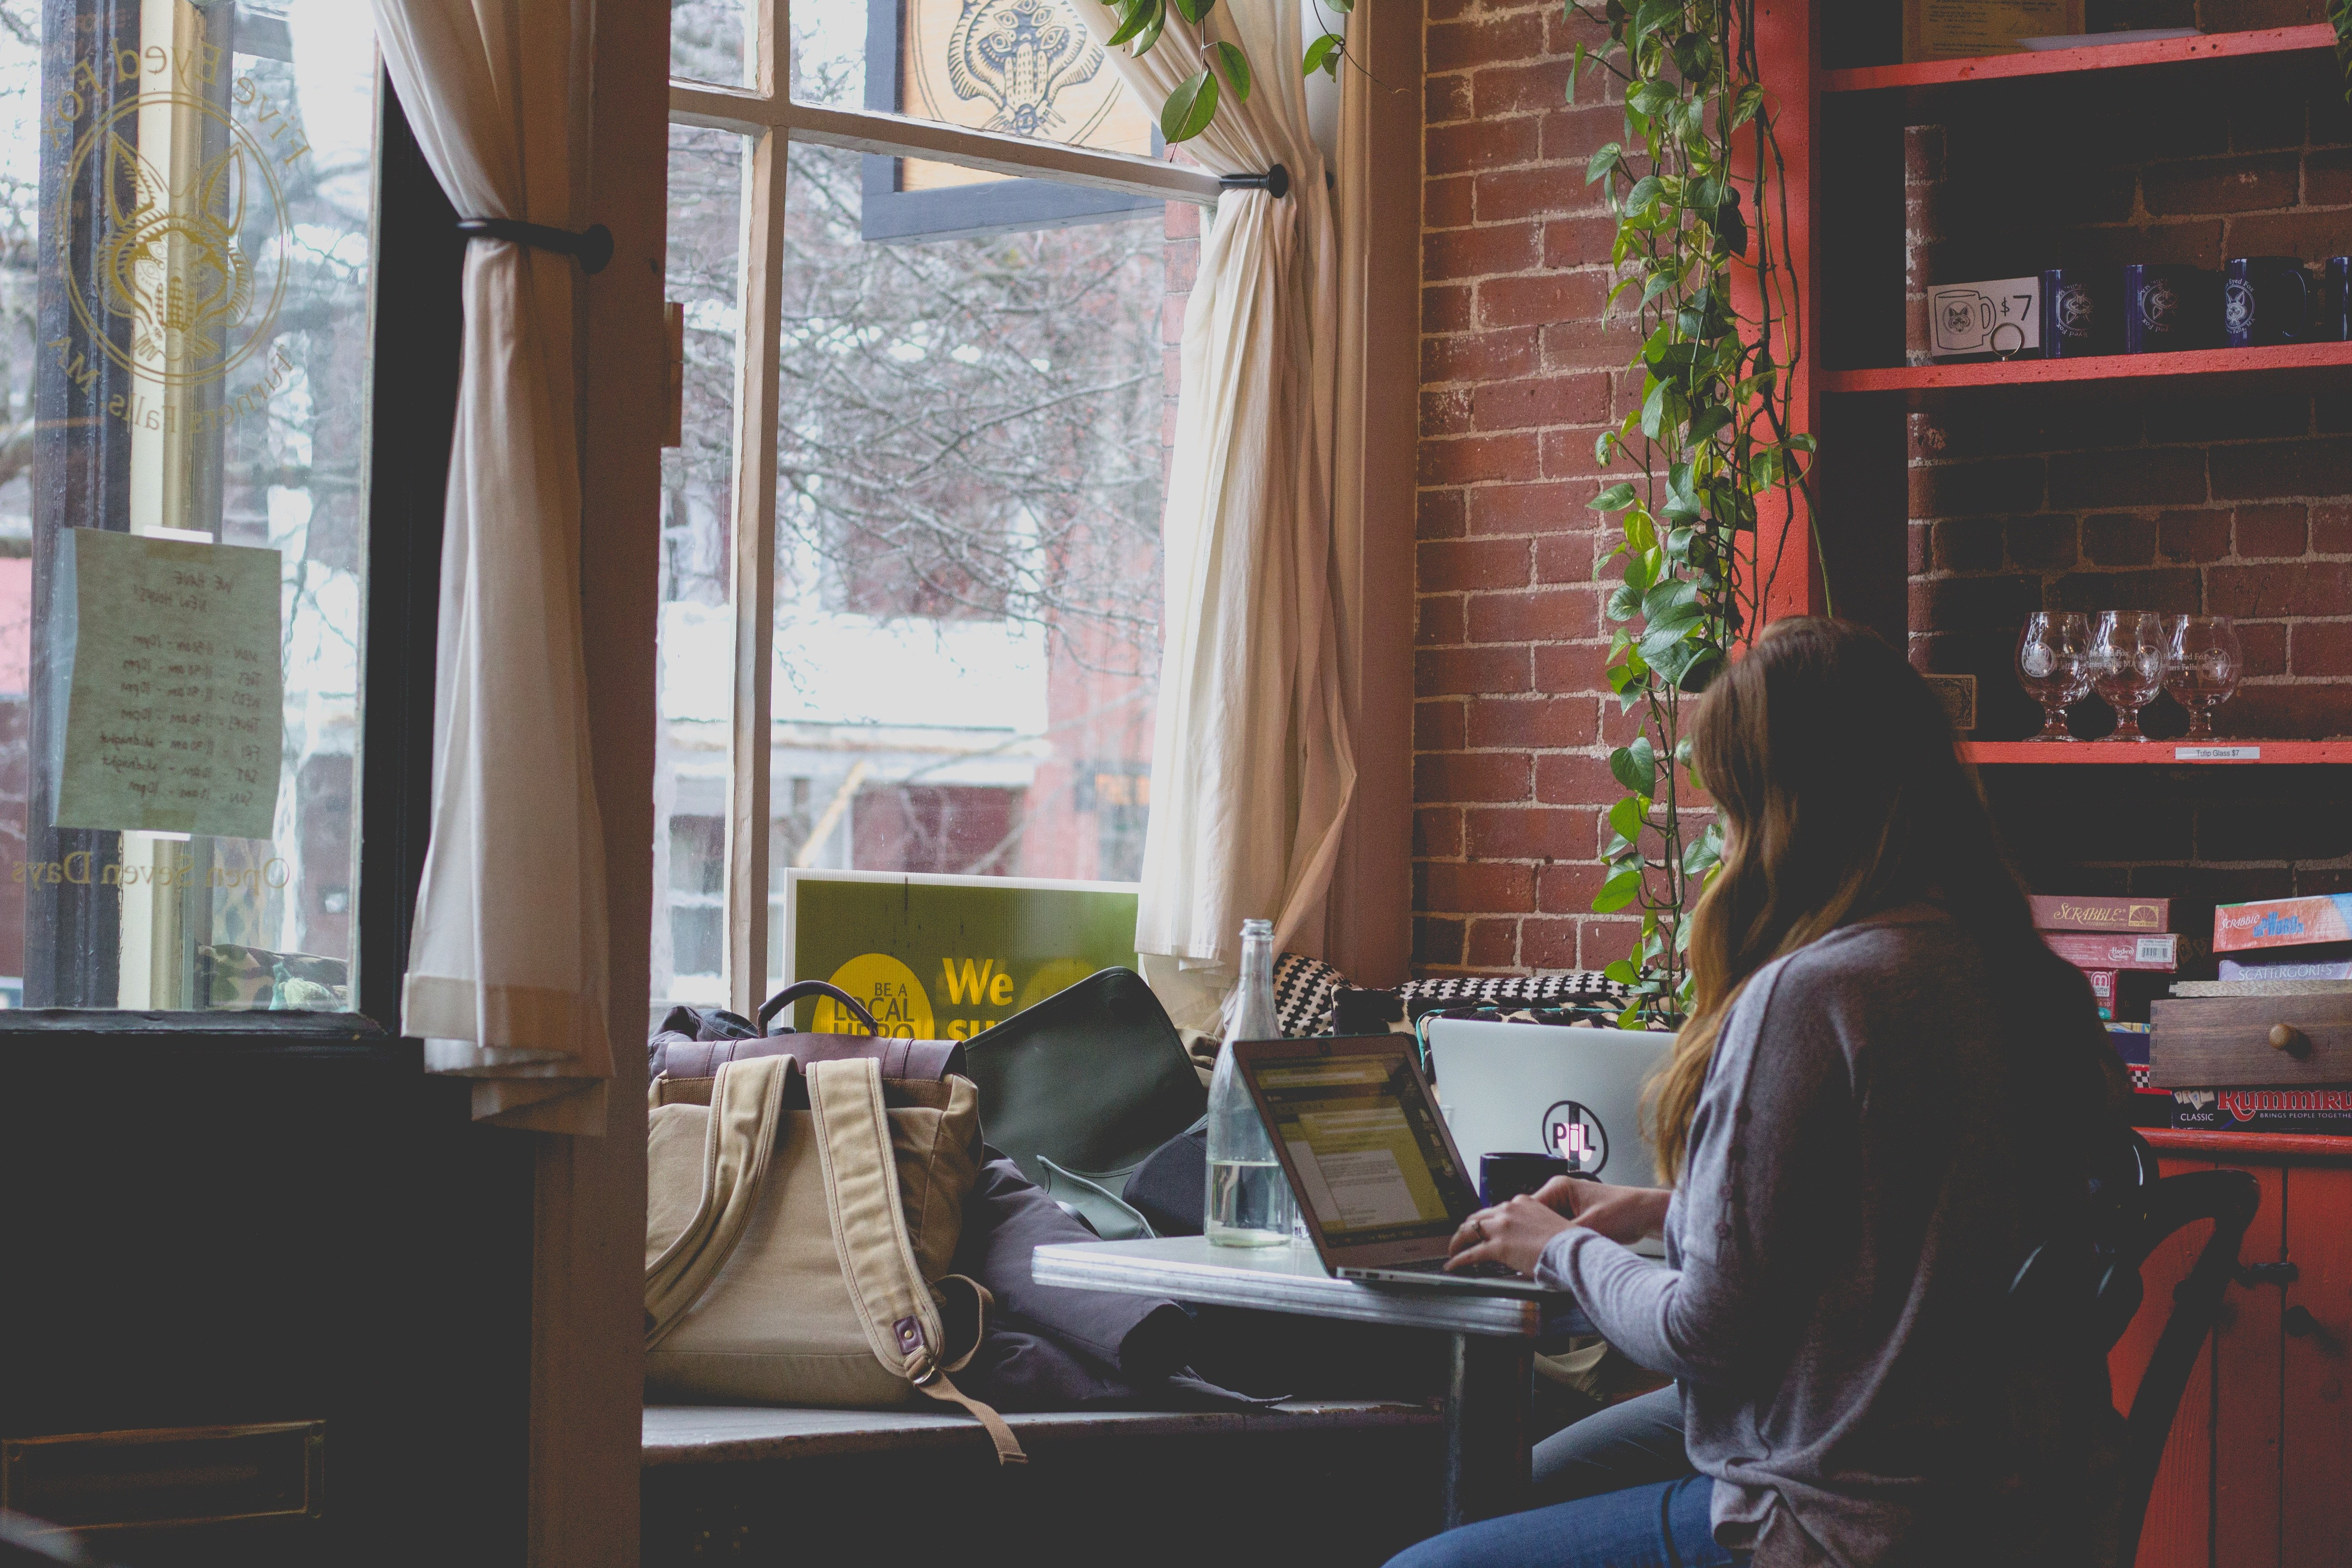 Woman on a laptop in a cafe